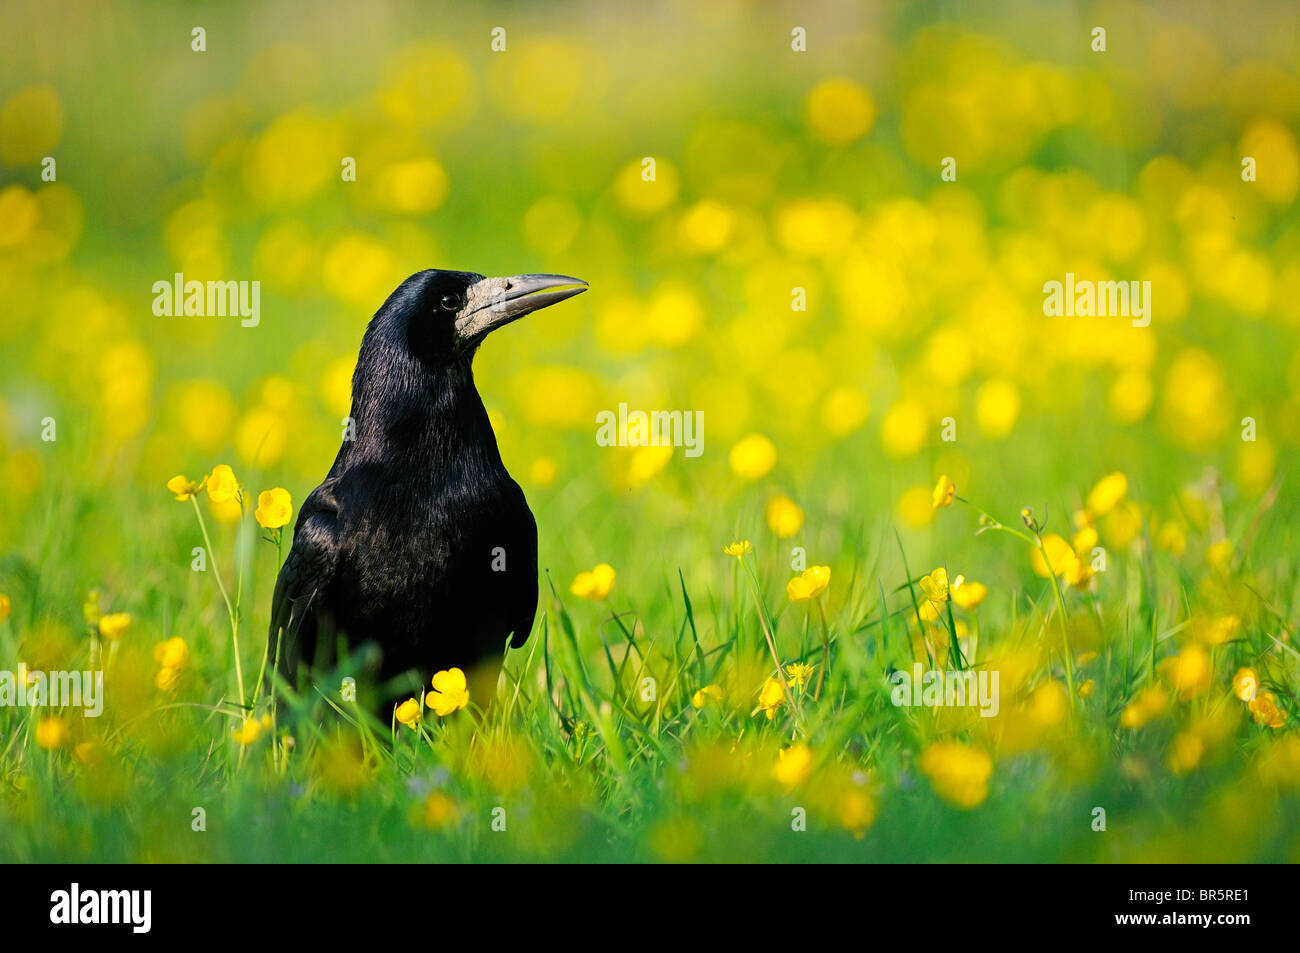 Rook (Corvus frugilegus) on ground amongst buttercups, Oxfordshire, UK. - Stock Image